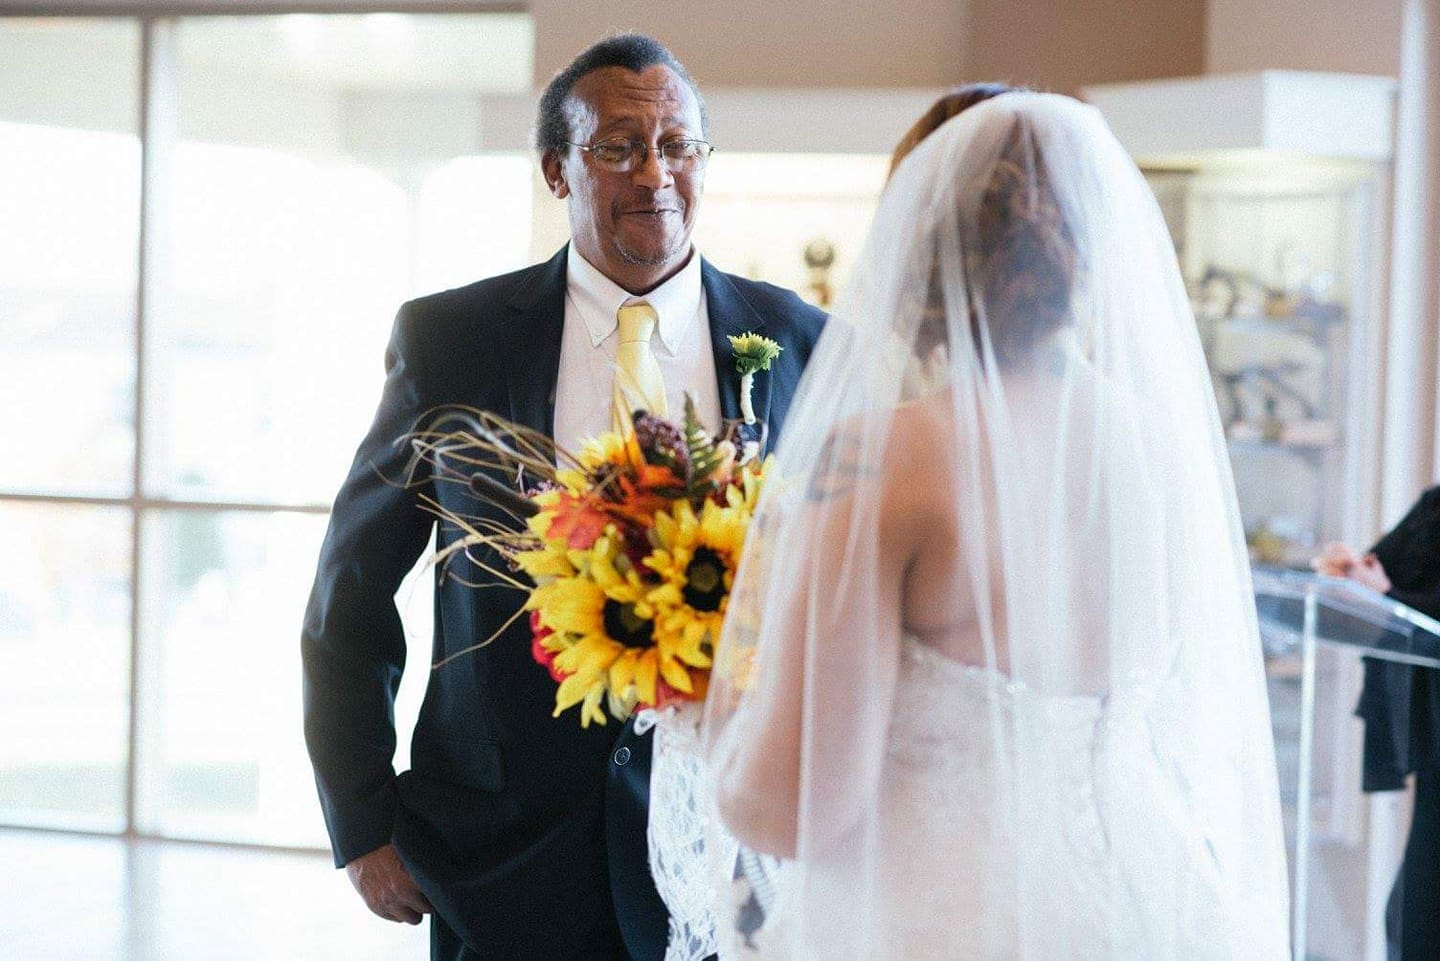 Holly Patterson - My dad seeing me in my dress for the first time before walking me down the isle with my mother